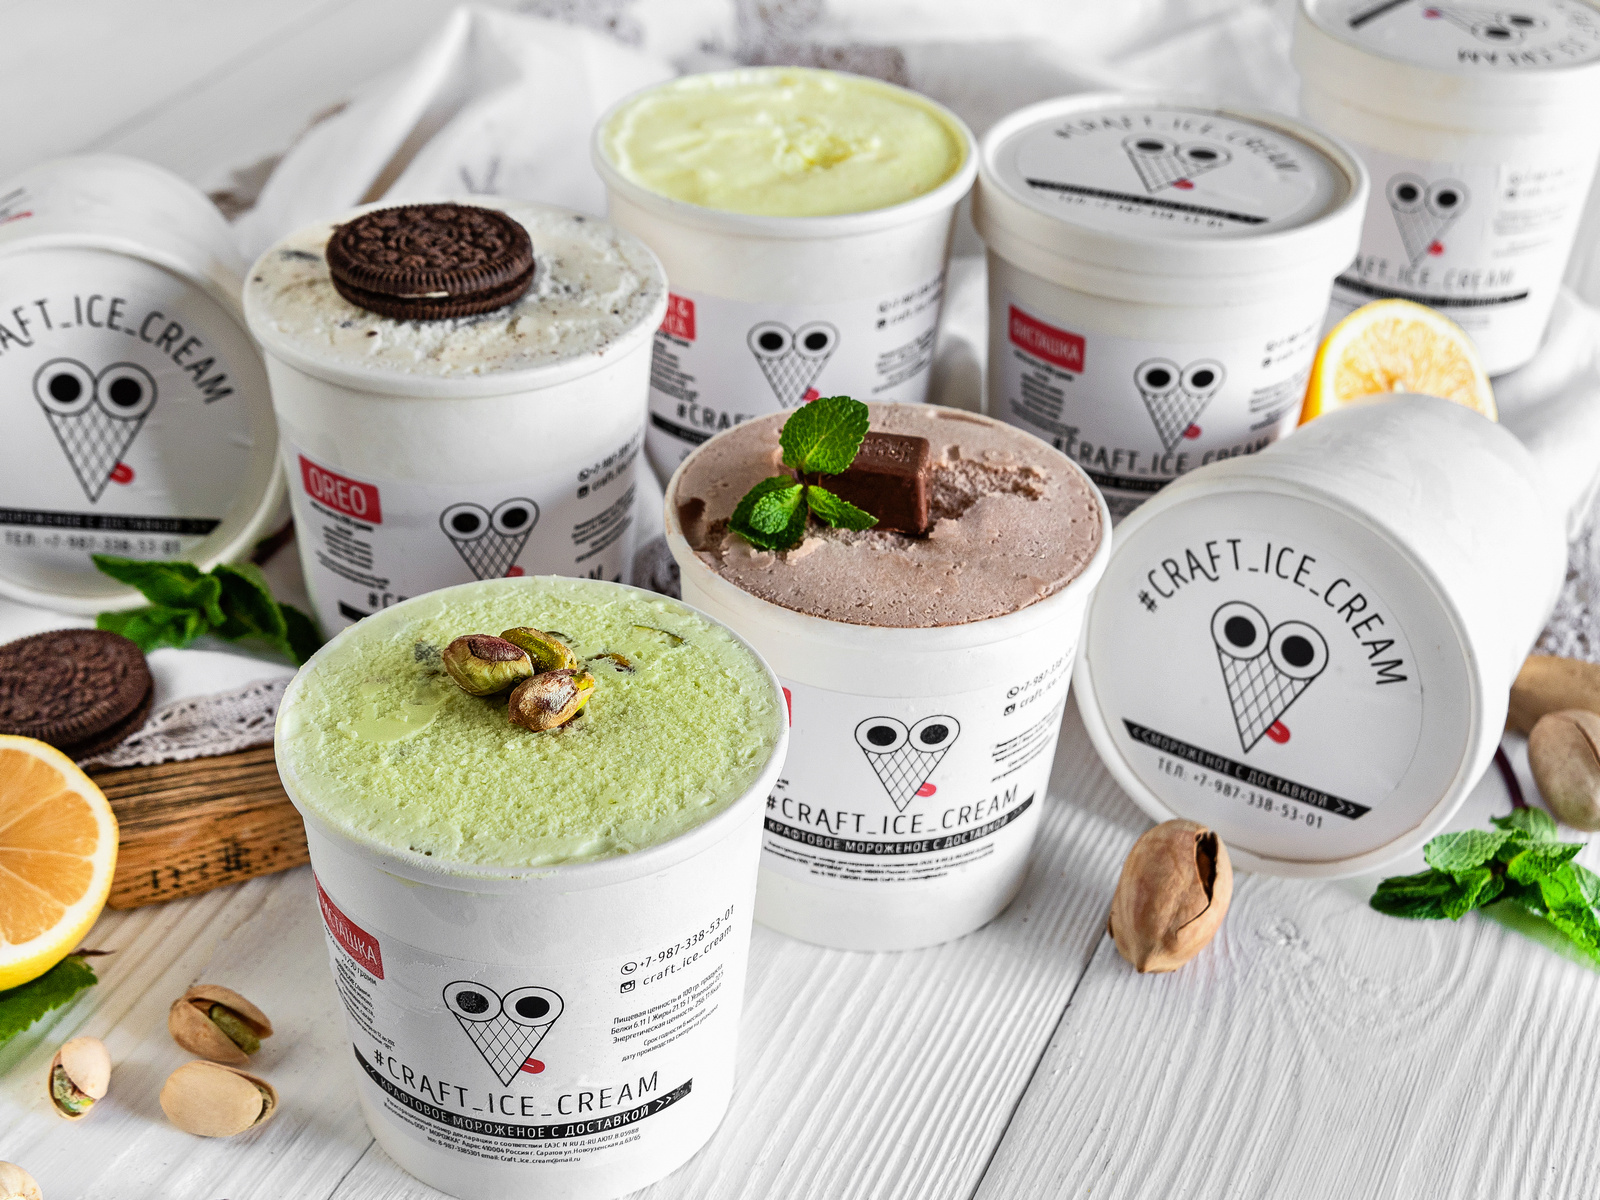 Craft Ice Cream